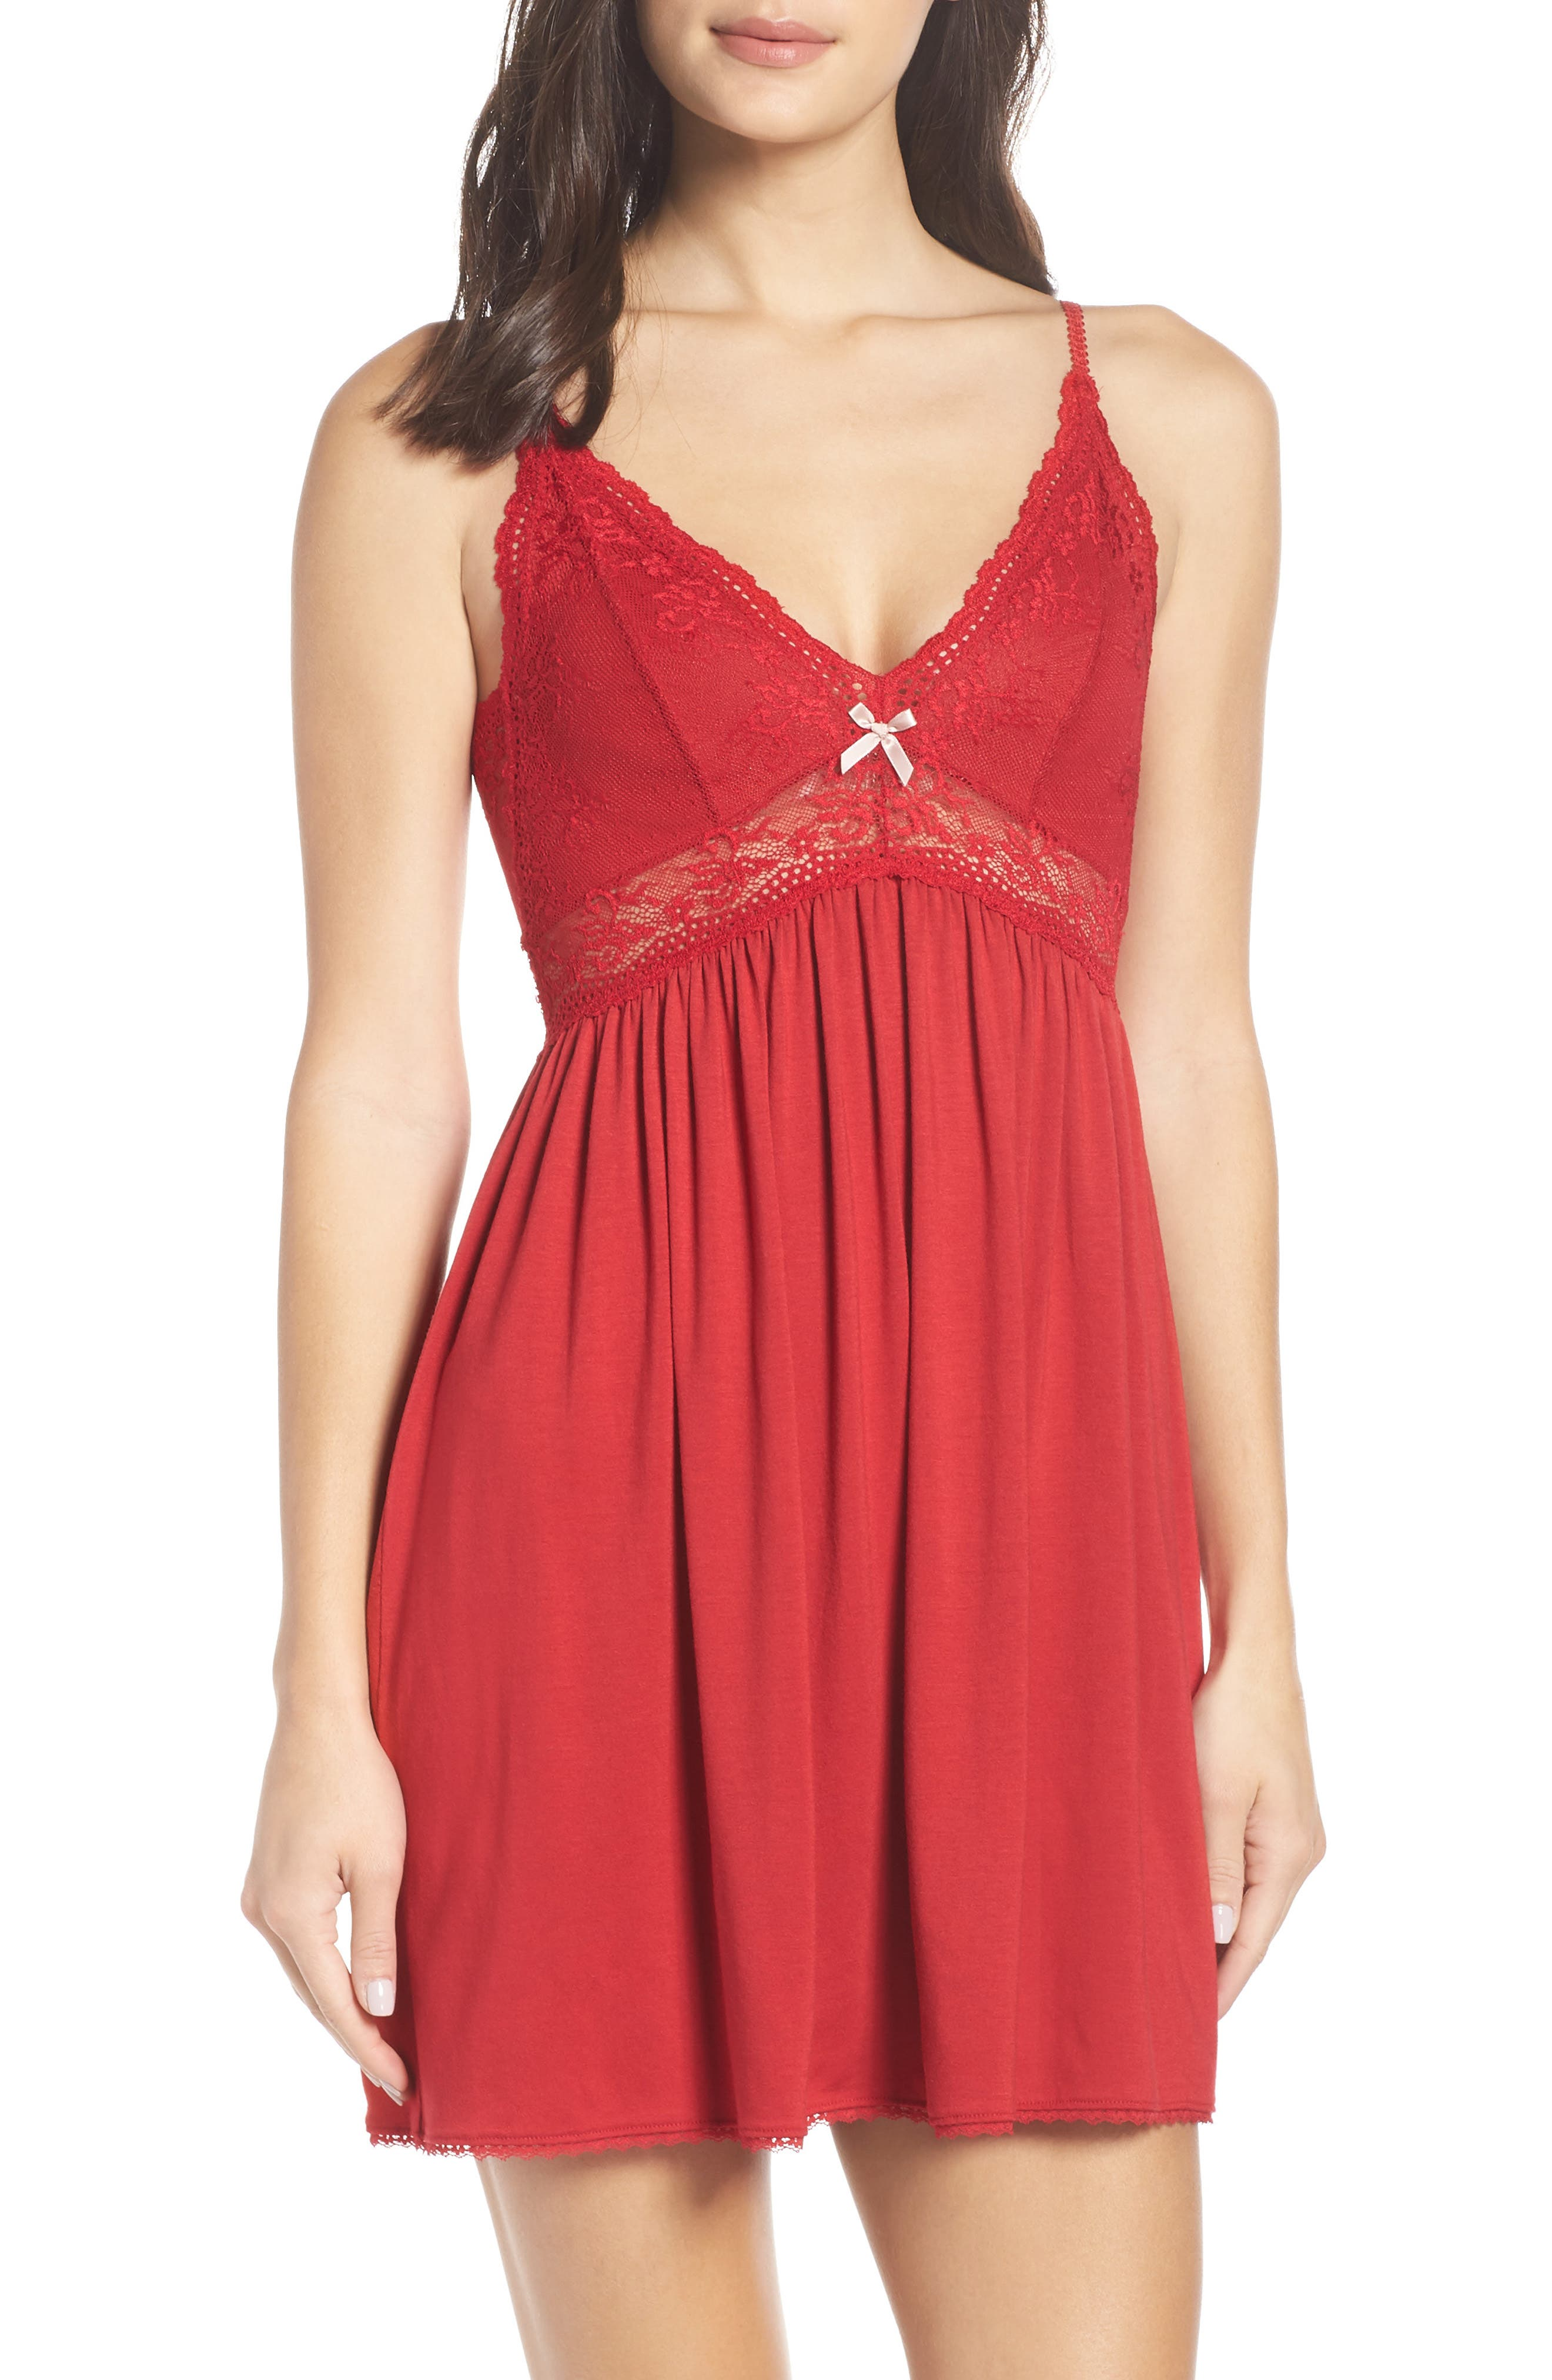 Colette The Mademoiselle Jersey Chemise in Red